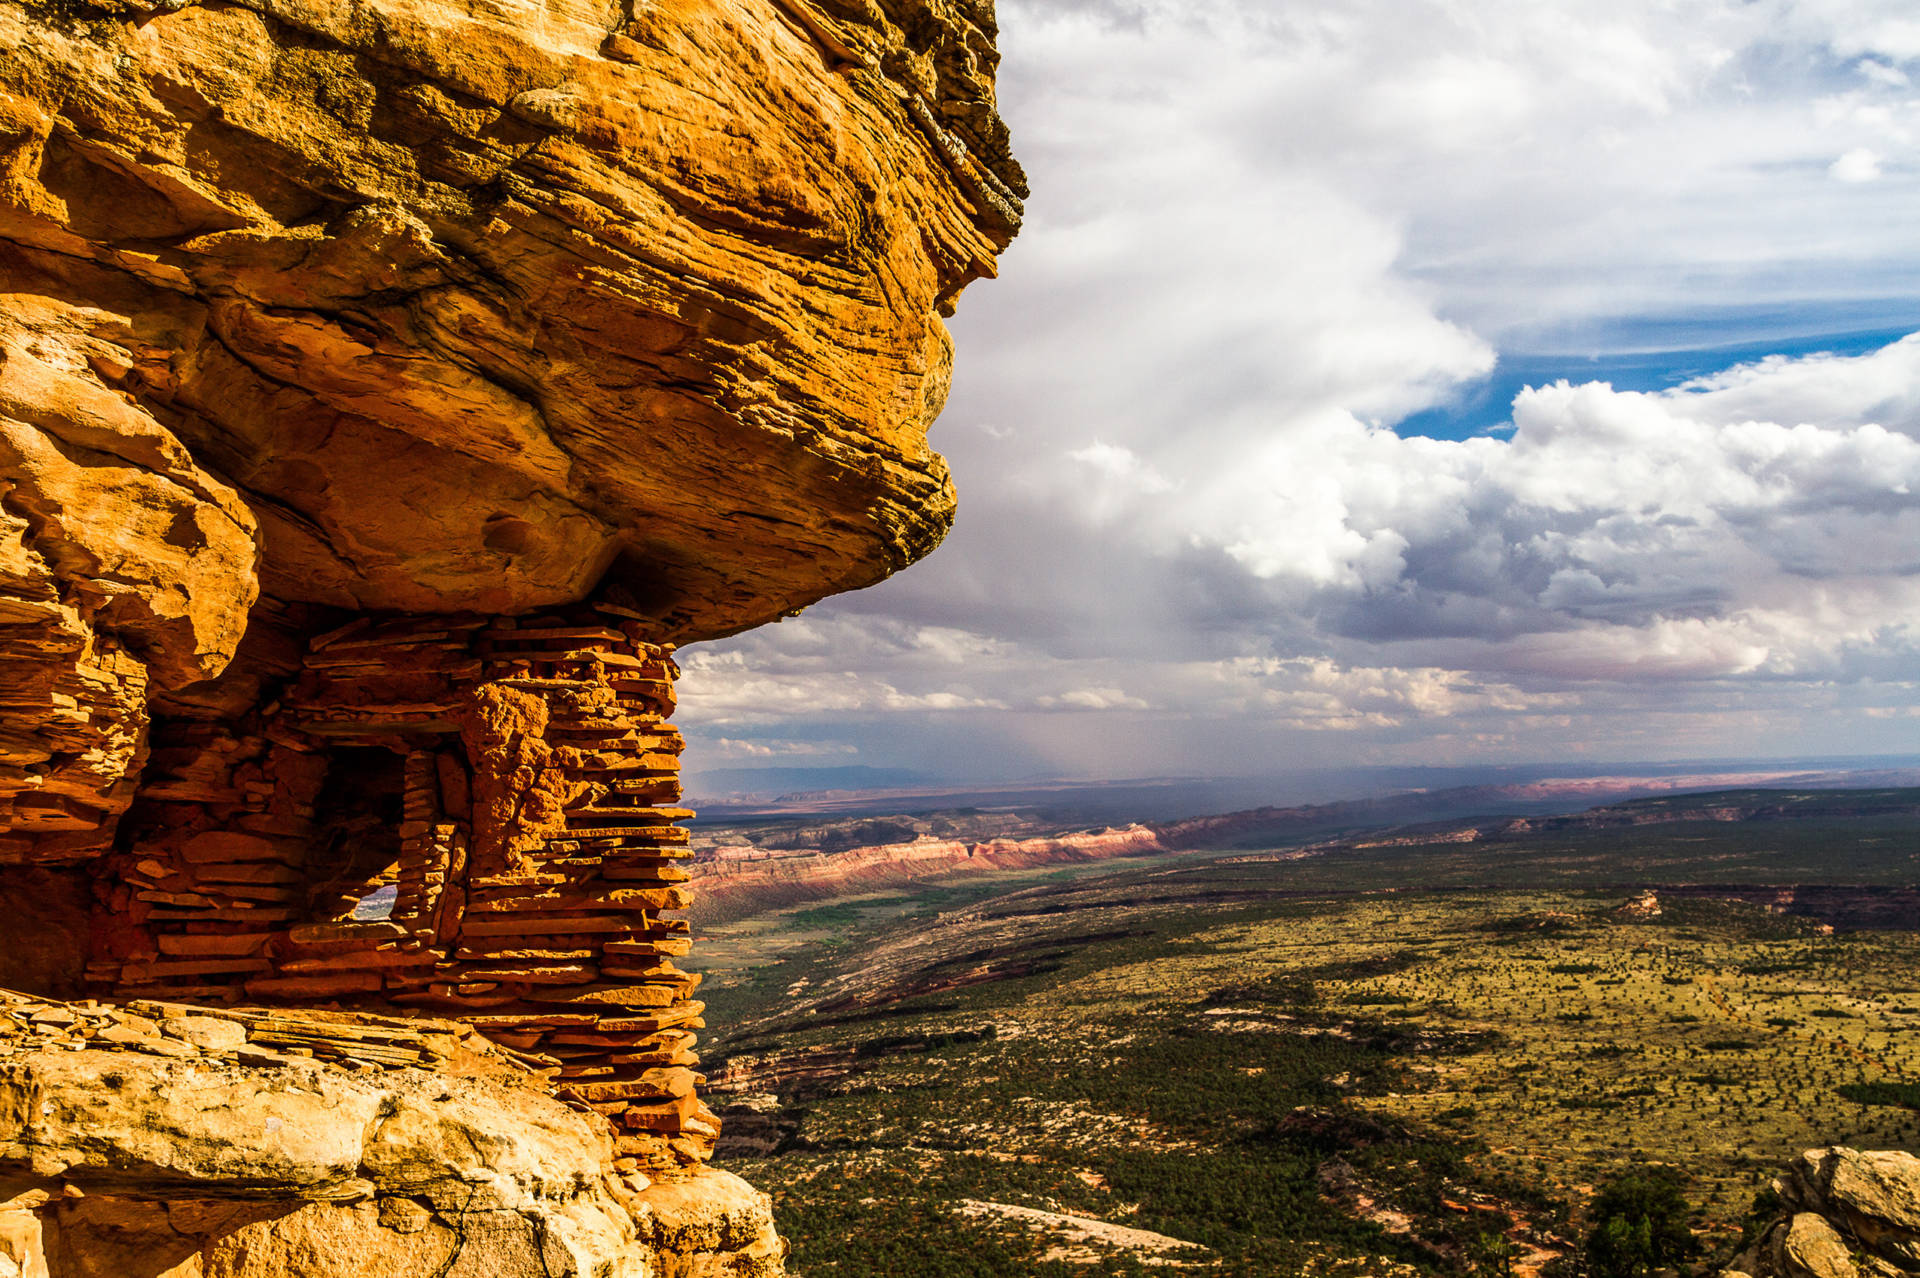 A prehistoric granary overlooking Cedar Mesa, a site inside the newly created Bears Ears National Monument in Utah that is sacred to many Native American tribes. Natives still hunt and forage for food and medicine throughout the Bears Ears region. Josh Ewing/Courtesy of Bears Ears Inter-Tribal Coalition